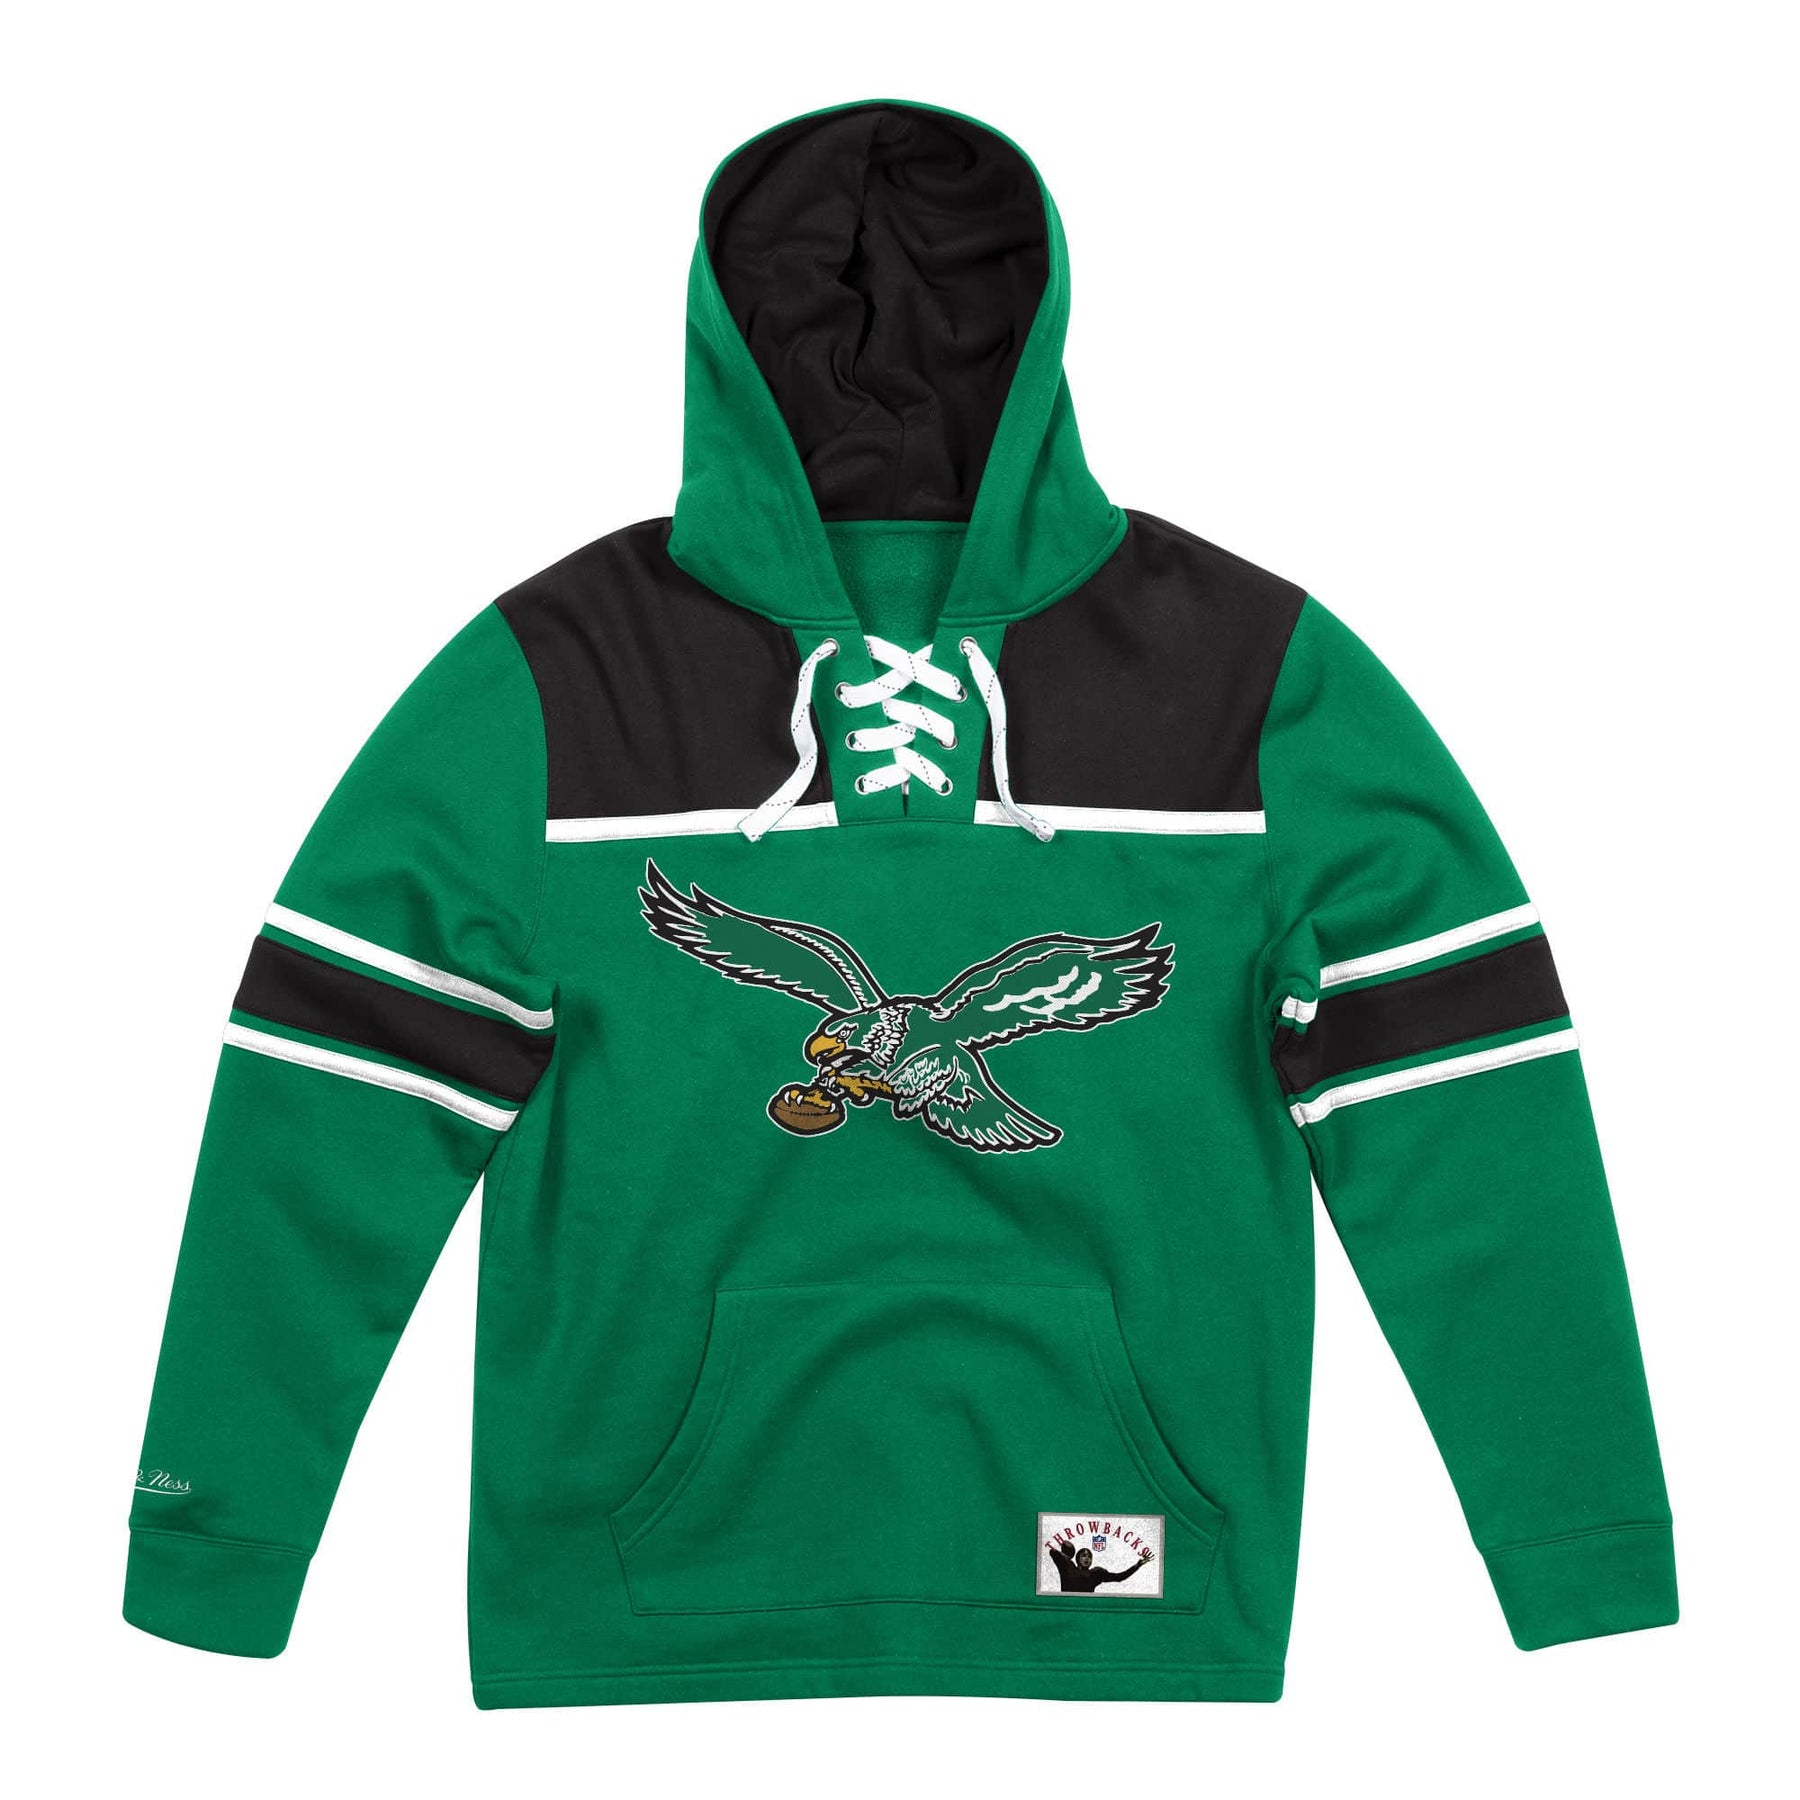 promo code 182f4 4c81e Philadelphia Eagles Mitchell & Ness Football Hoodie